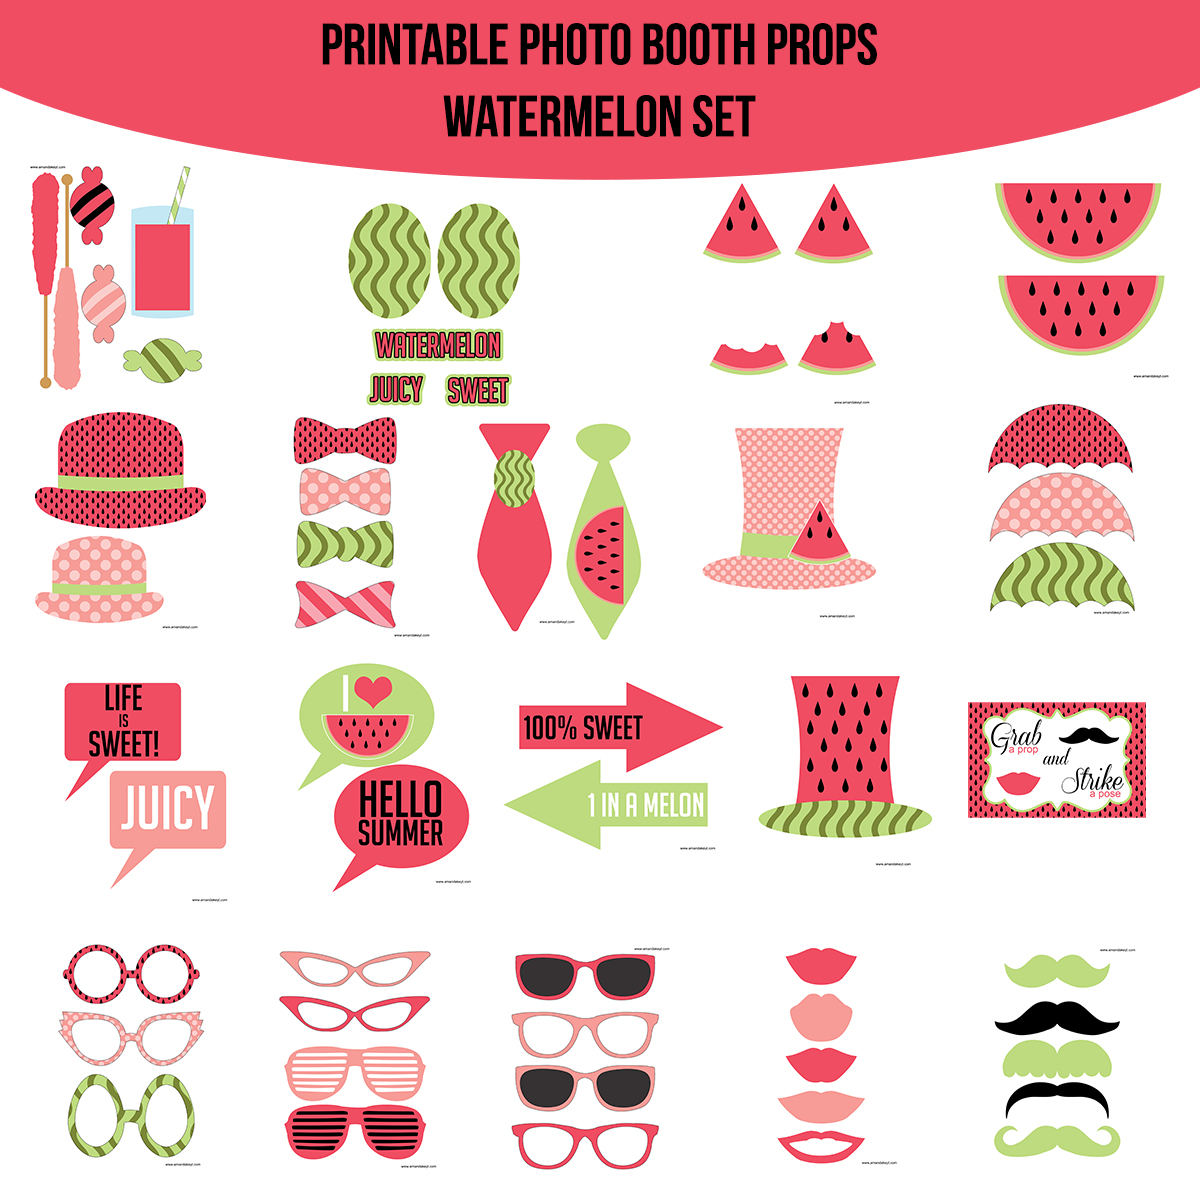 See the Set - To View The Whole Watermelon Printable Photo Booth Prop Set Click Here